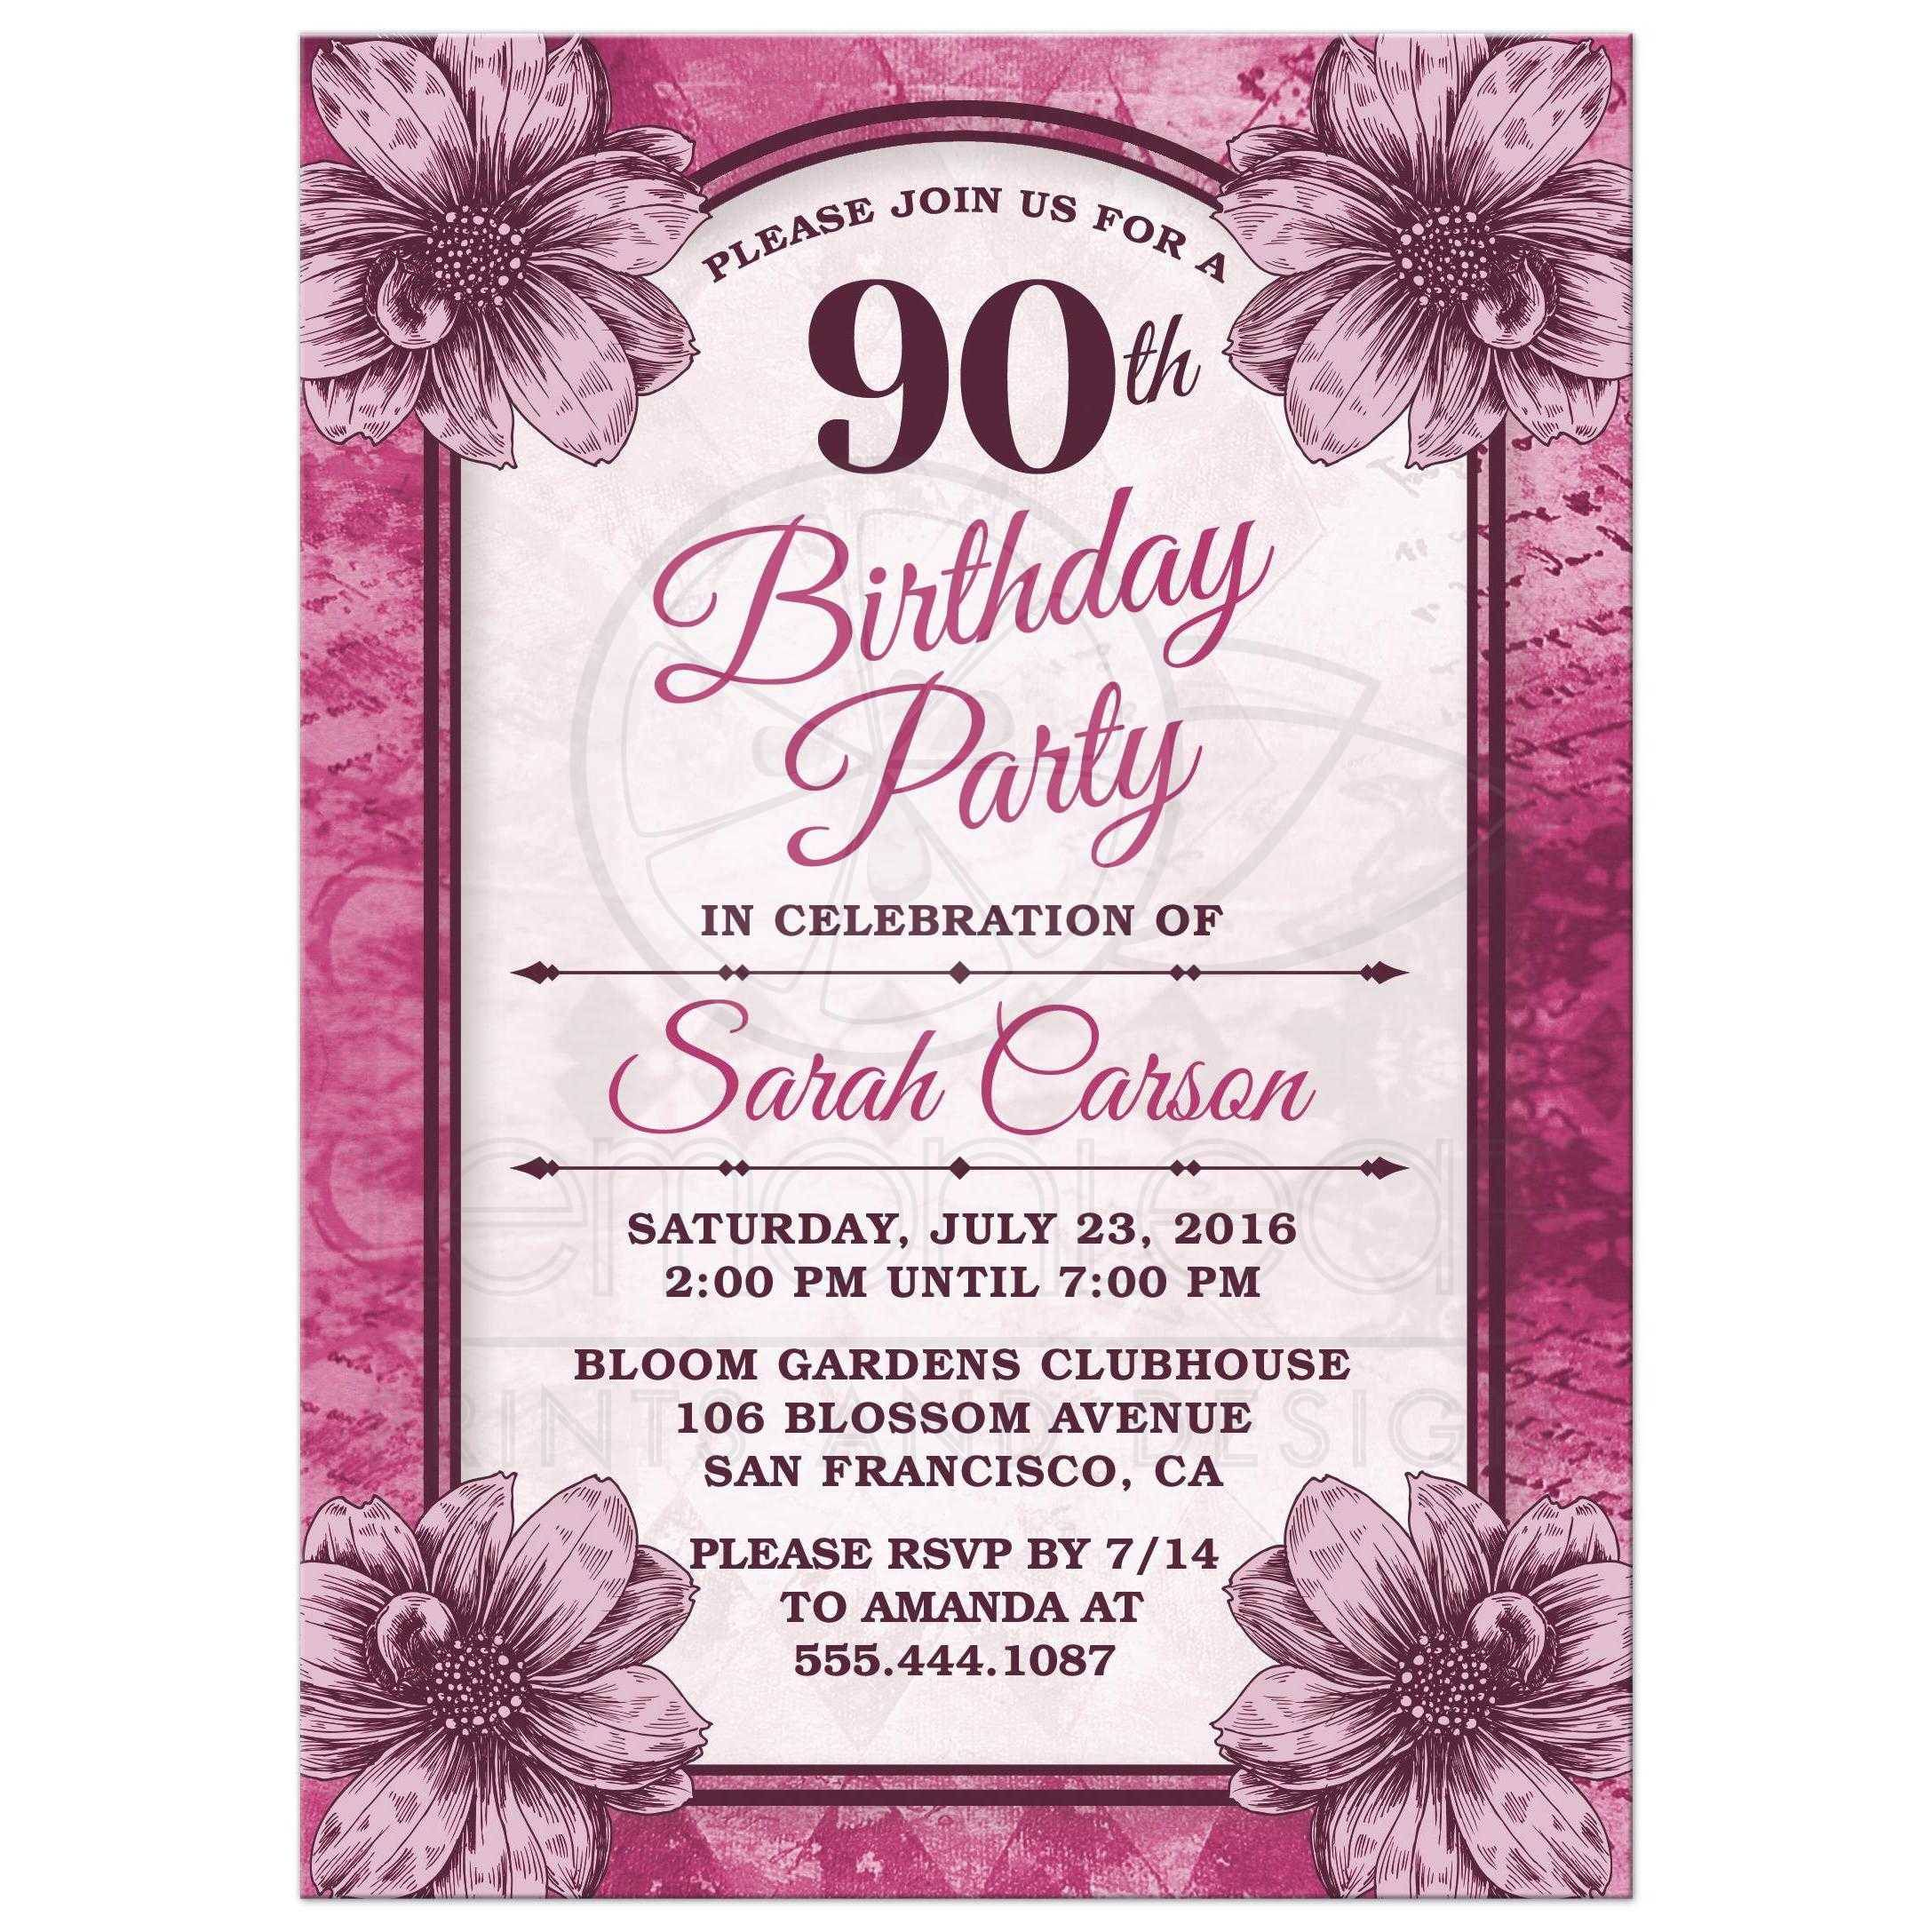 90th Birthday Party Invitations Templates Free  Birthday Party Invitation Template Word